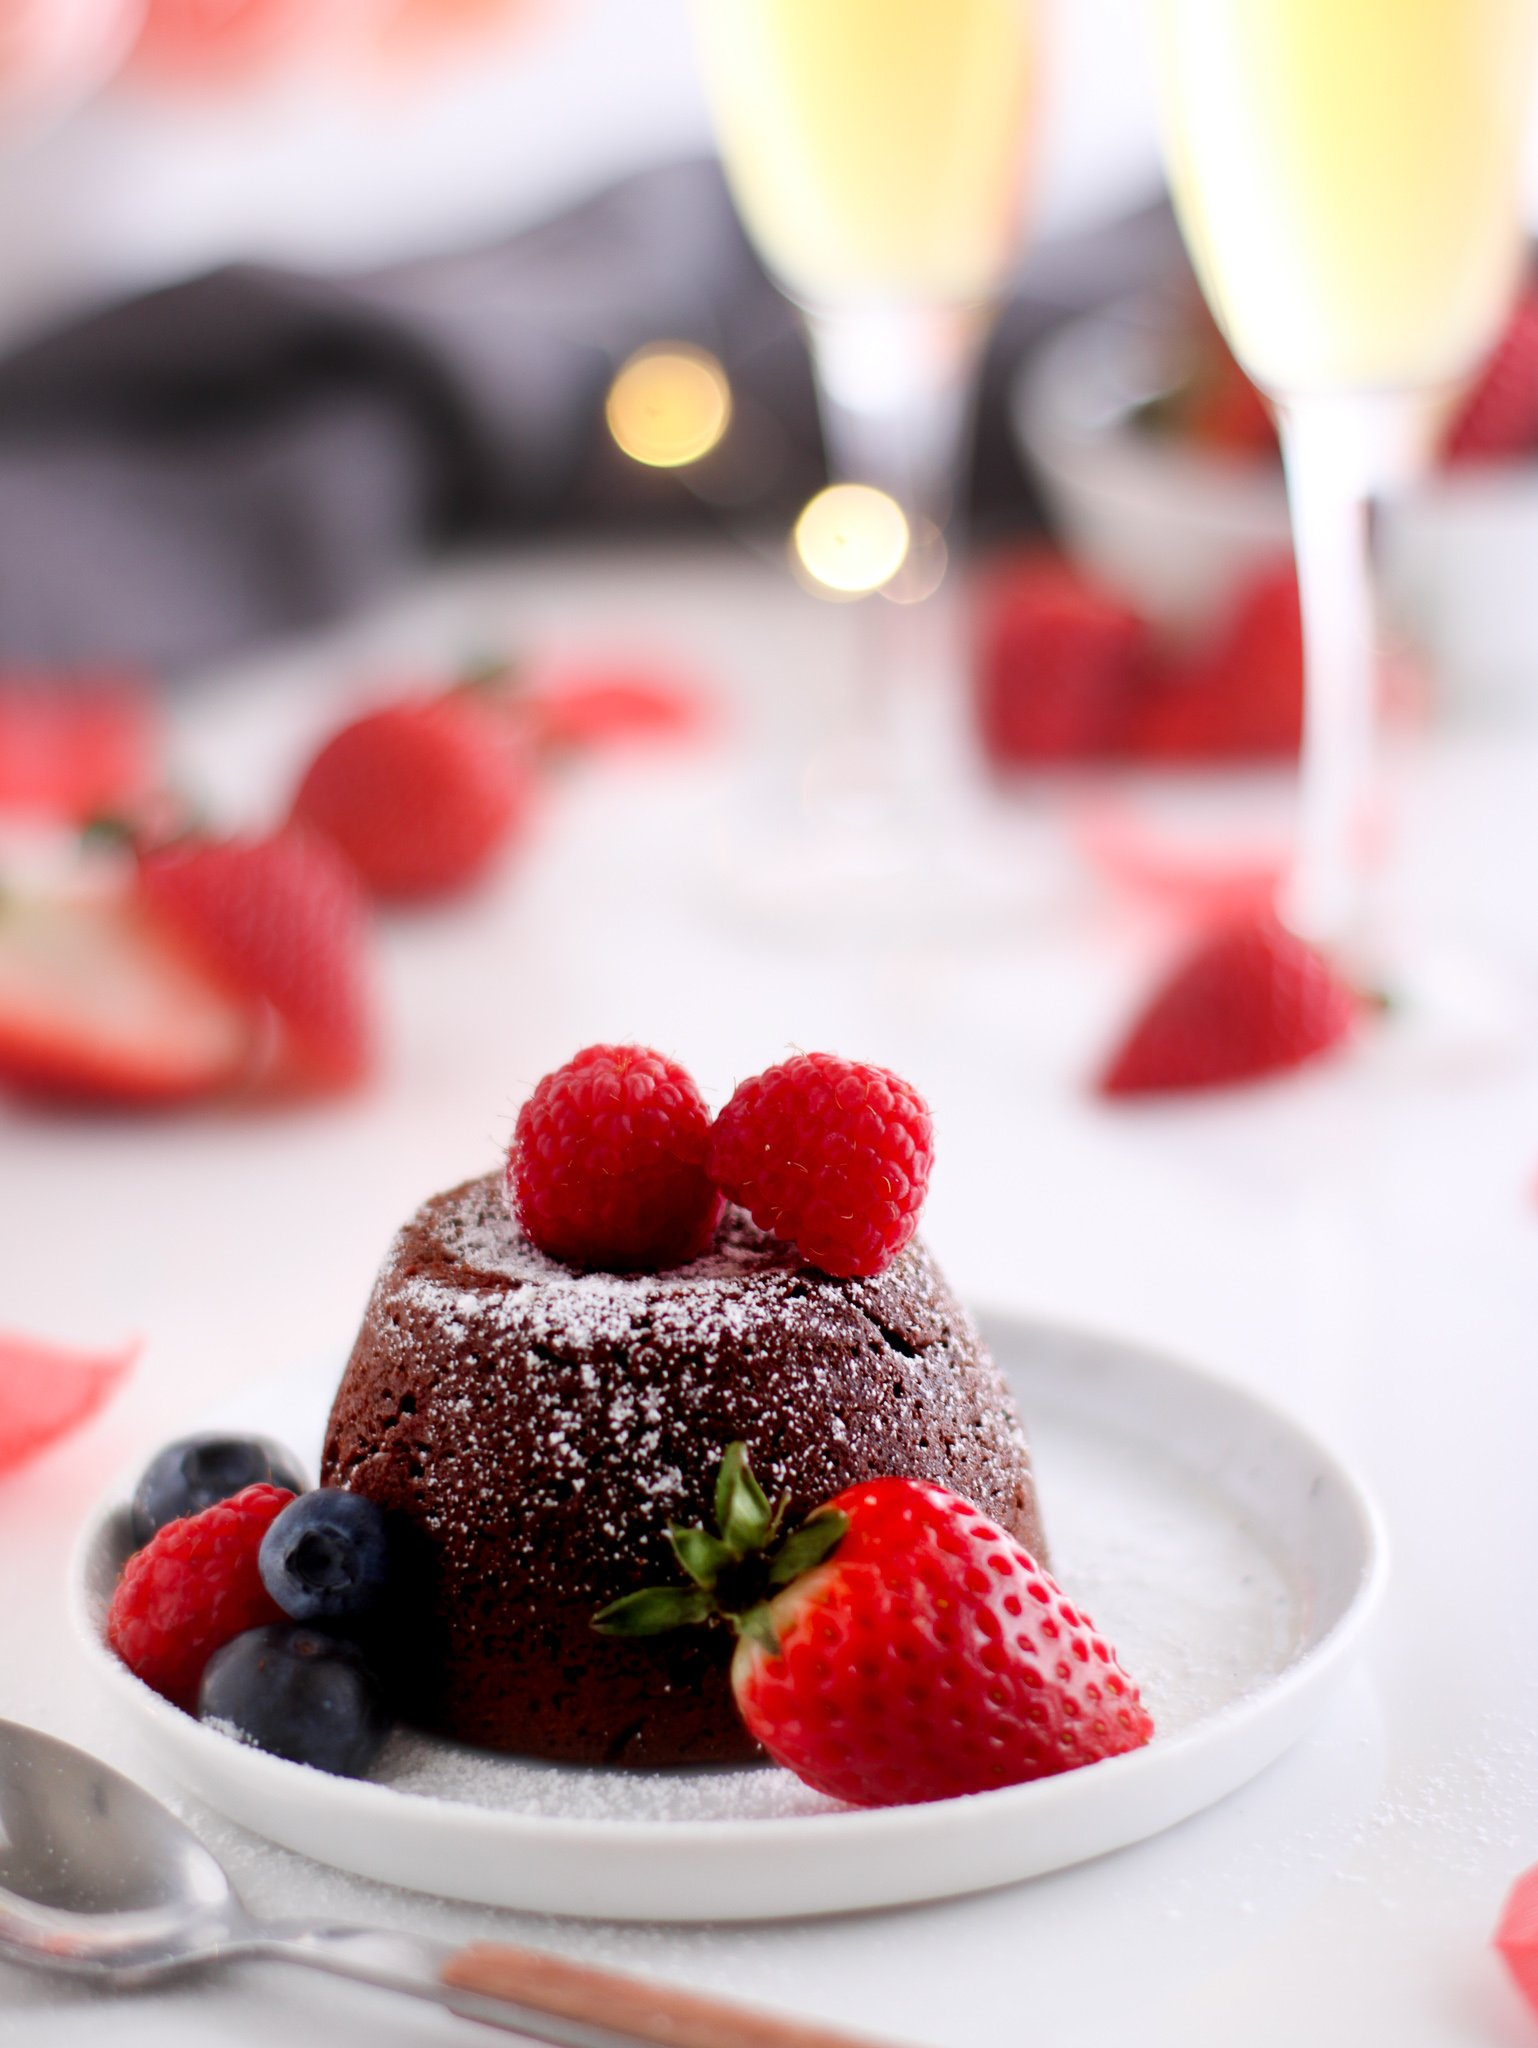 Gluten-free chocolate molten lava cake sitting on a white plate surrounded by fresh strawberries, raspberries and blueberries with two glasses of champagne in the background.